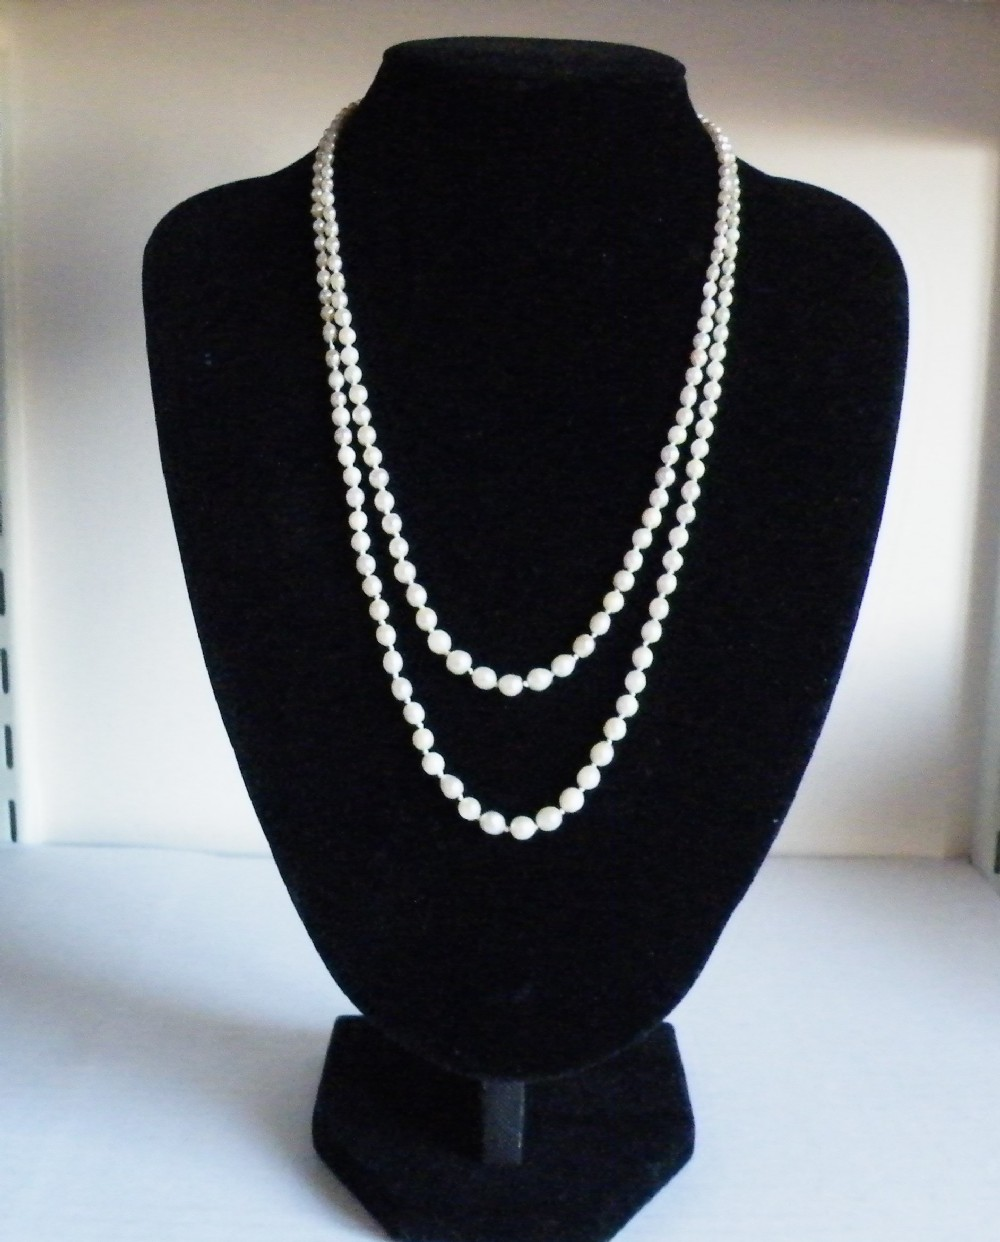 a 19th century double graduted natural pearl necklace with a diamond set clasp